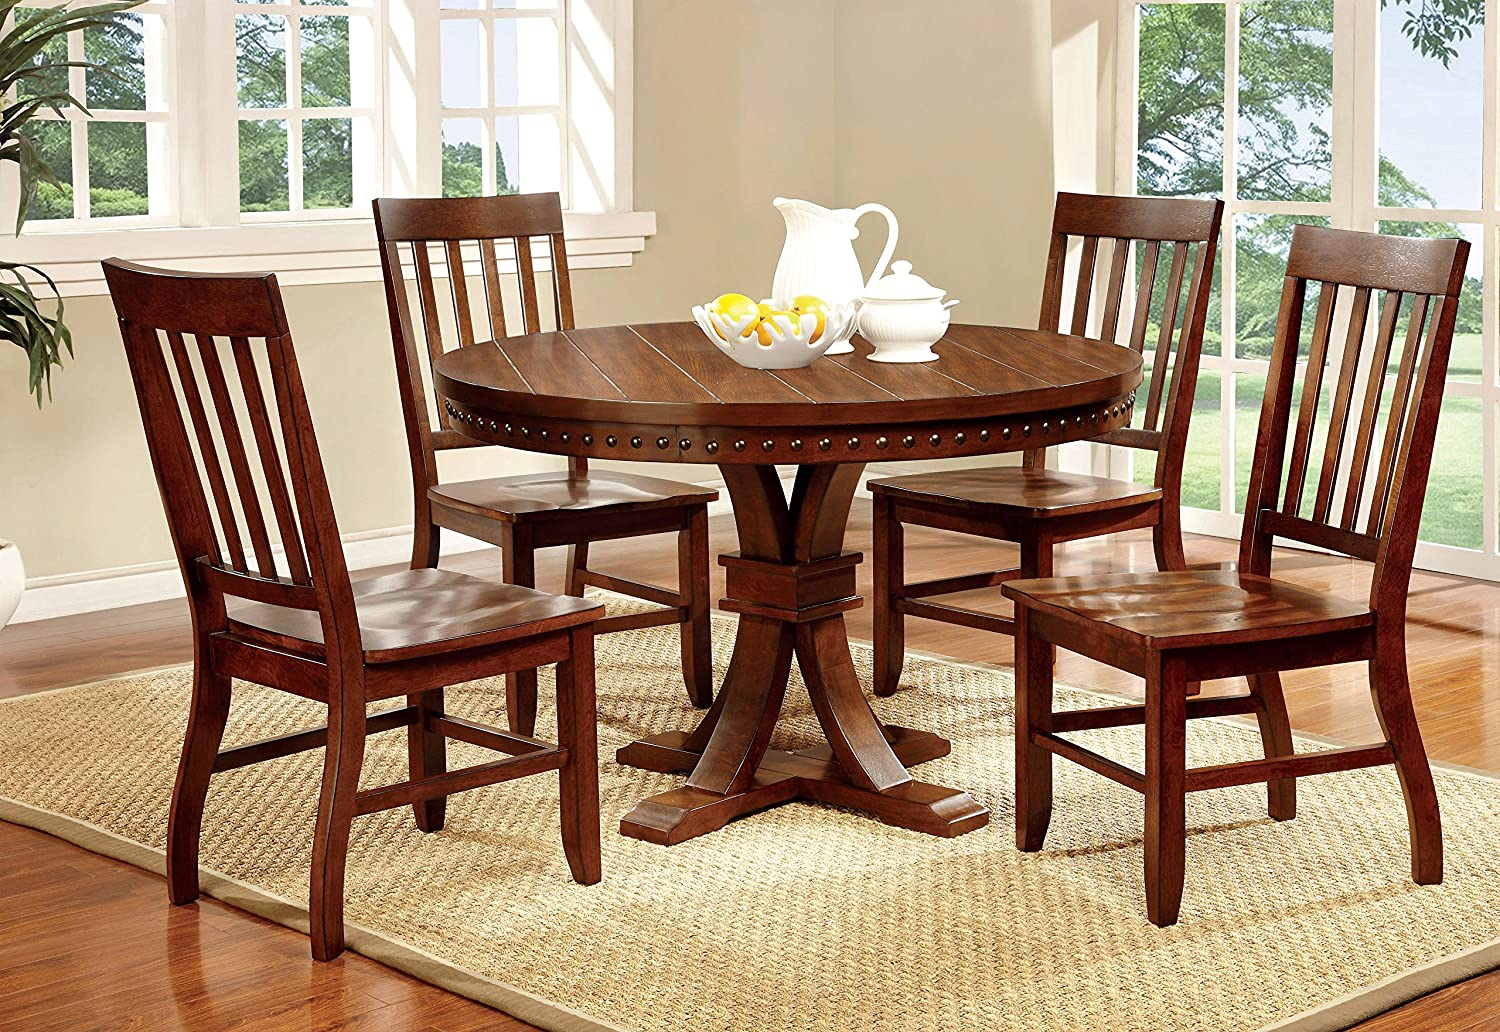 Round Wood Kitchen Table Sets Amazon furniture of america castile 5 piece transitional round amazon furniture of america castile 5 piece transitional round dining table set dark oak table chair sets workwithnaturefo